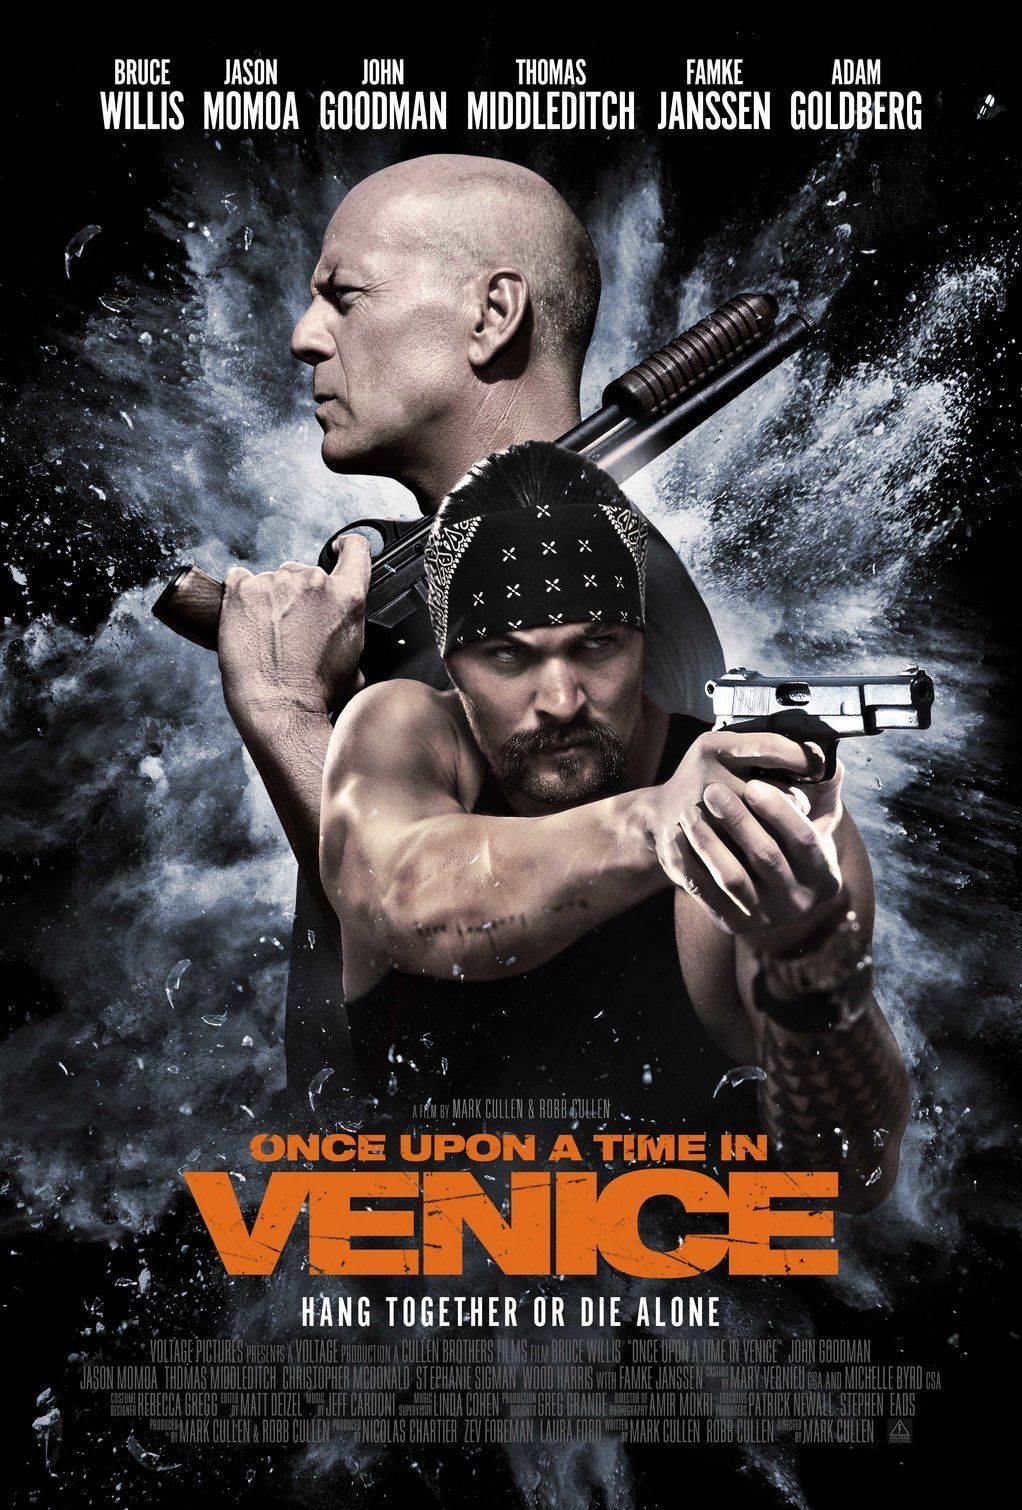 Once Upon A Time In Venice 2017 Subtitrat In Romana Filme Online 2017 Hd Subtitrate In Romana Filme Noi Gratis Online